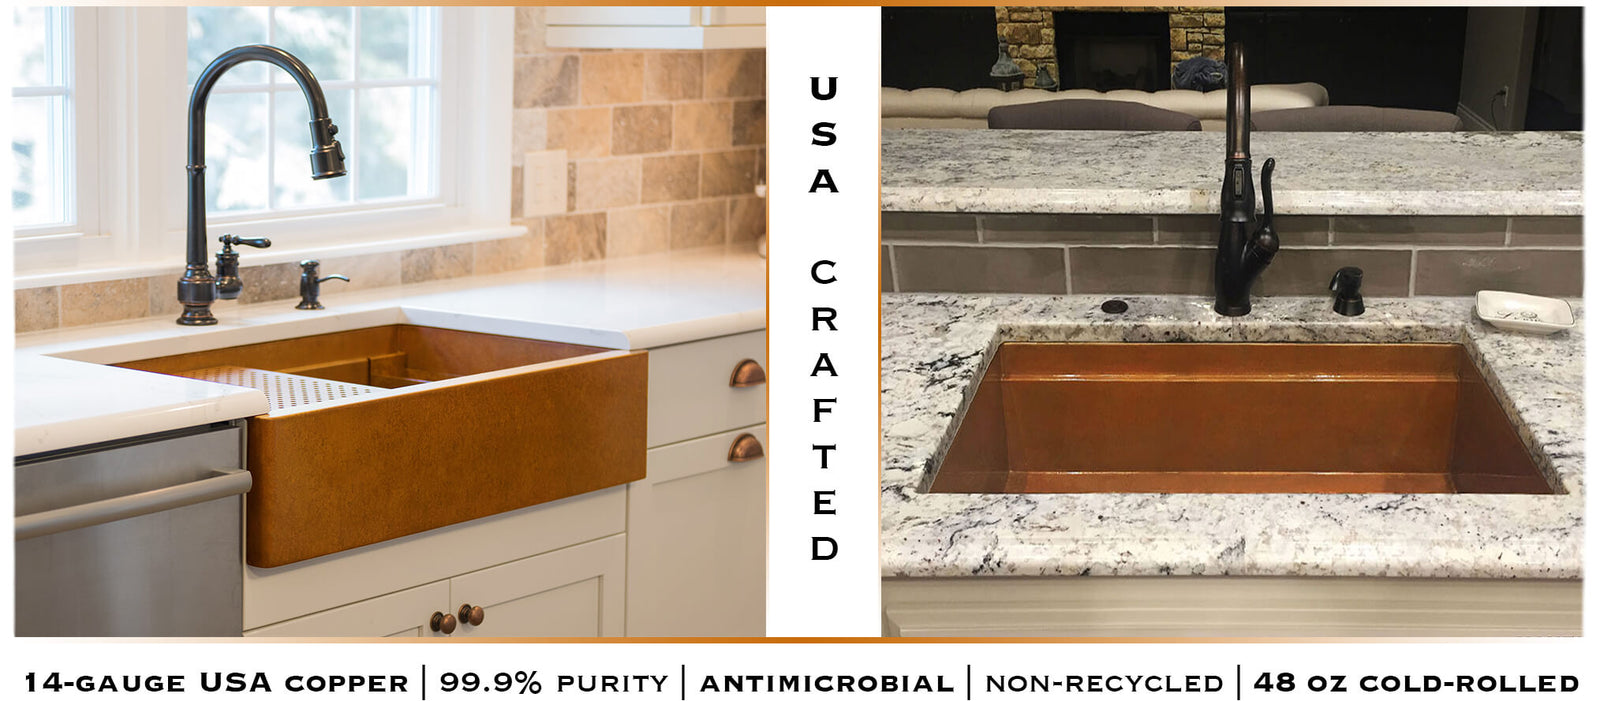 Undermount Copper Kitchen Sinks | USA - Havens | Luxury Metals